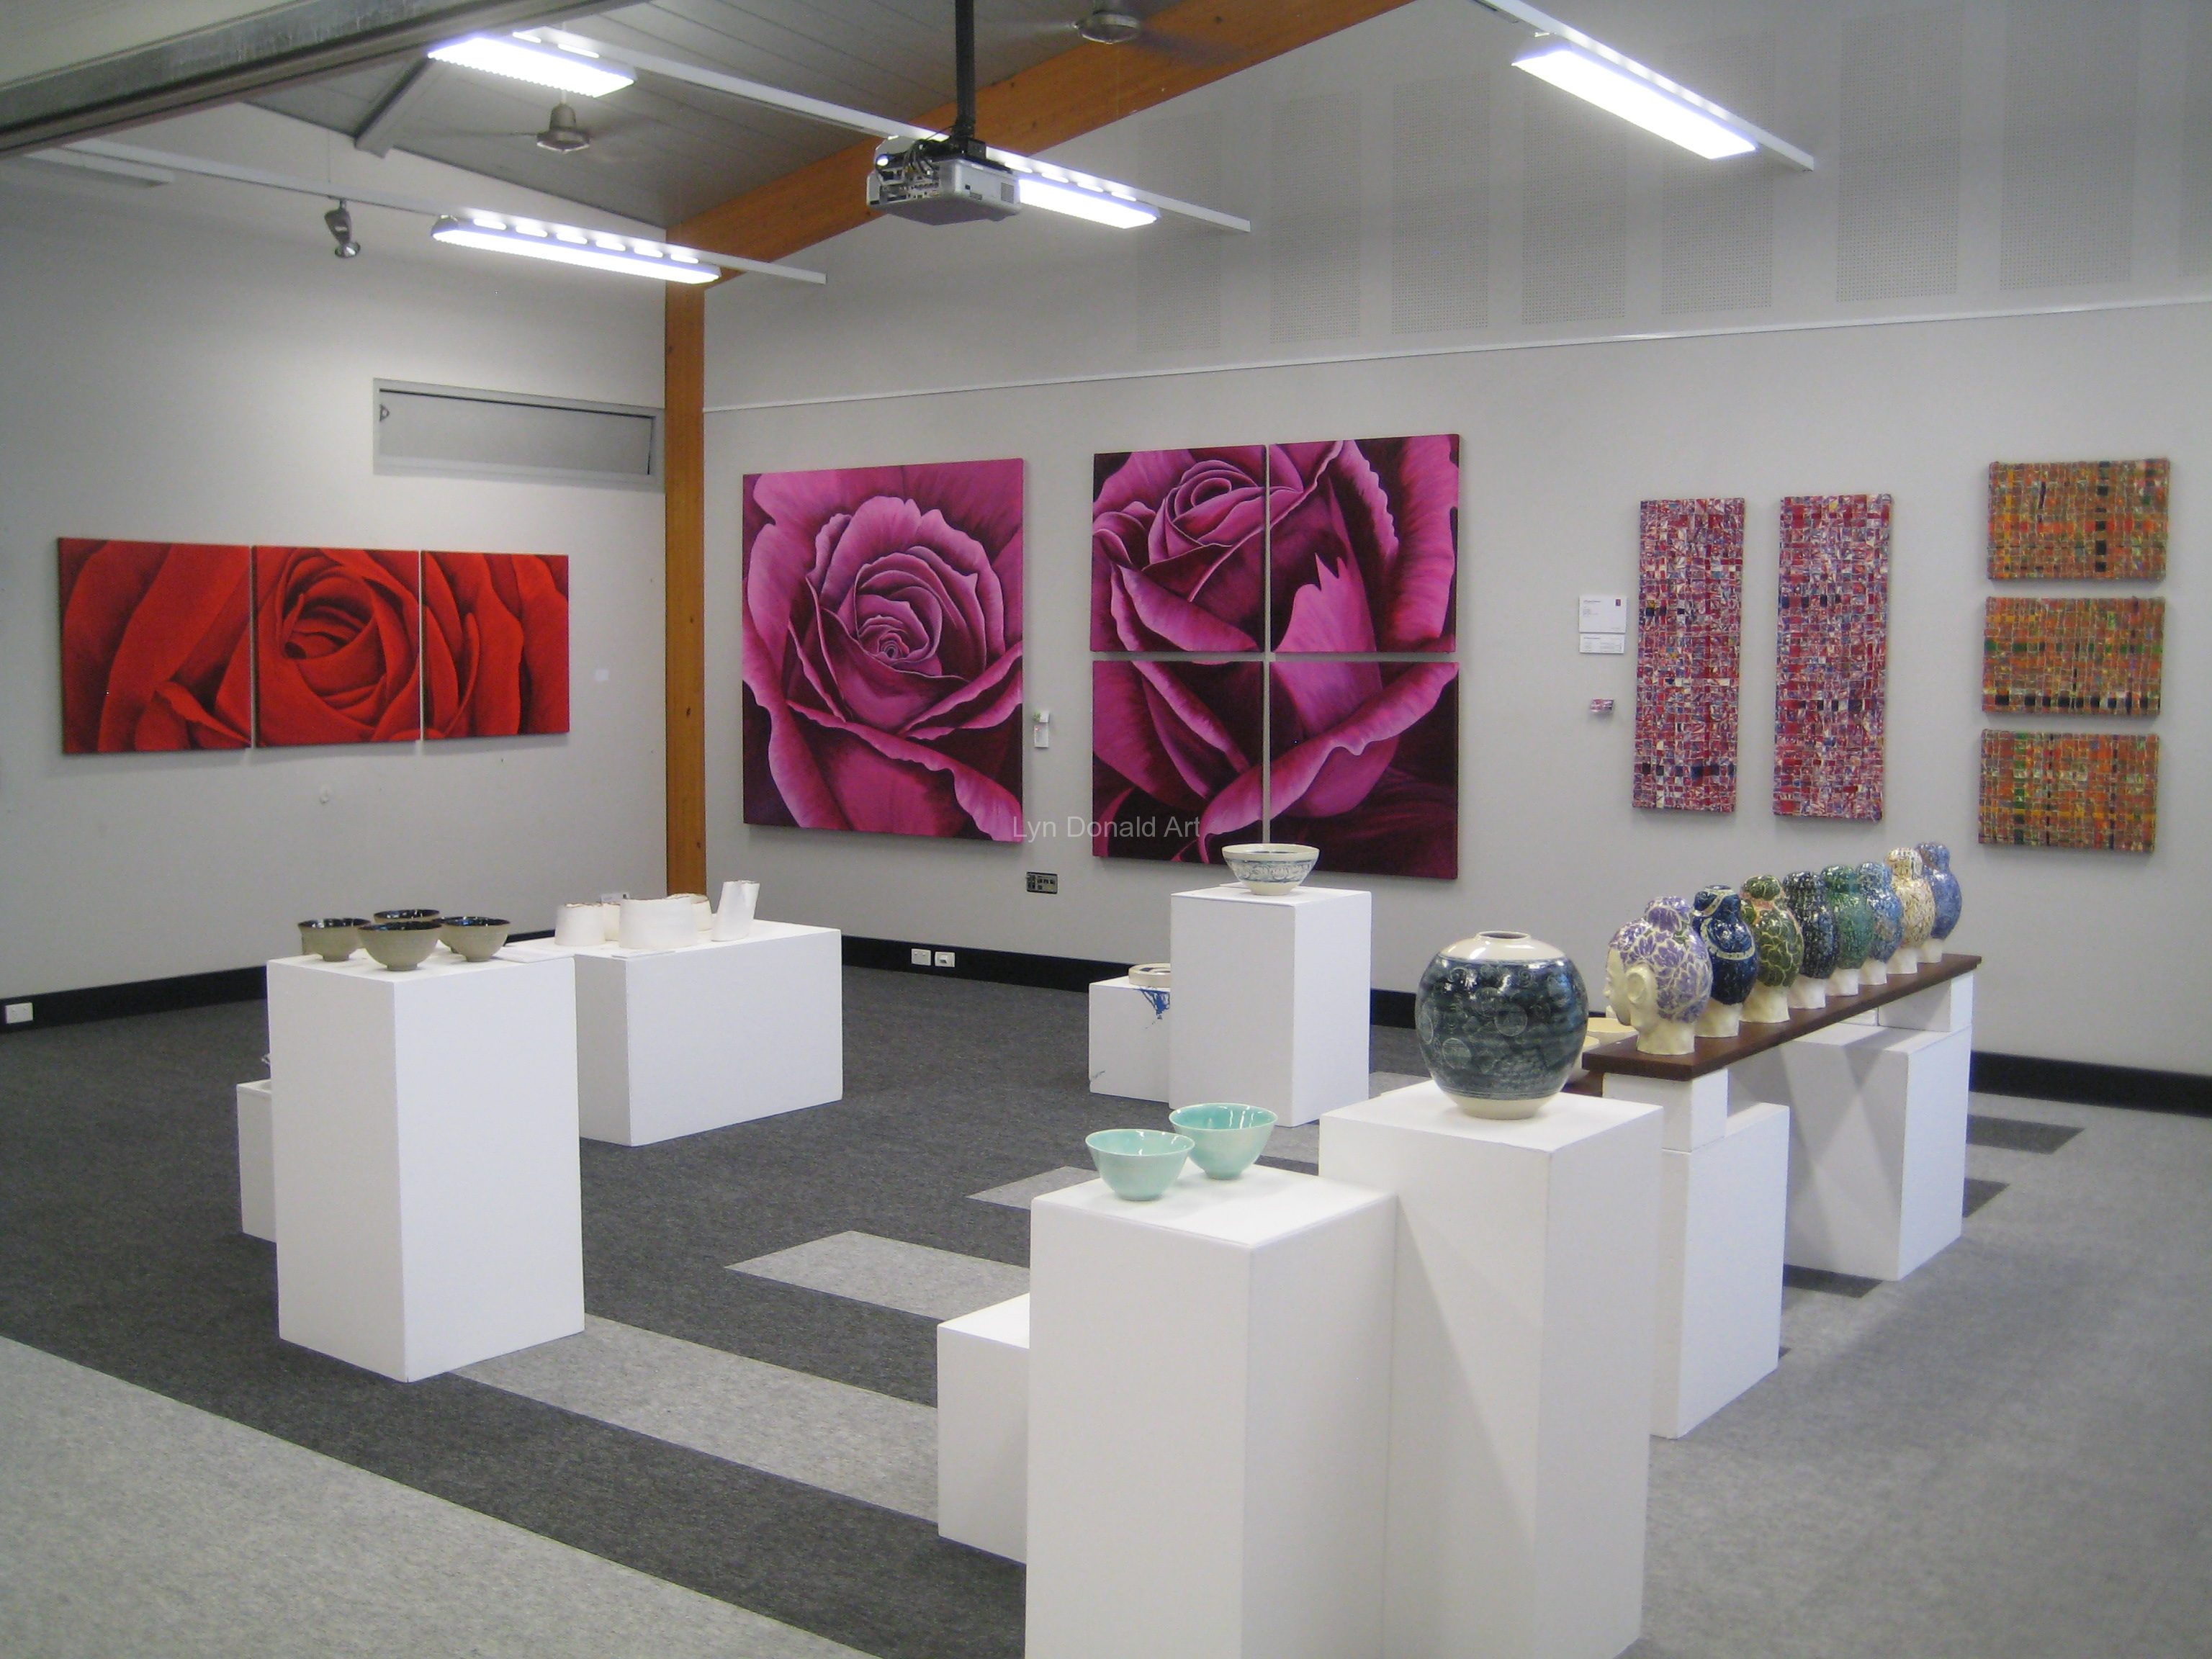 Lyn's Art ExhibitedNoosa Exhibition